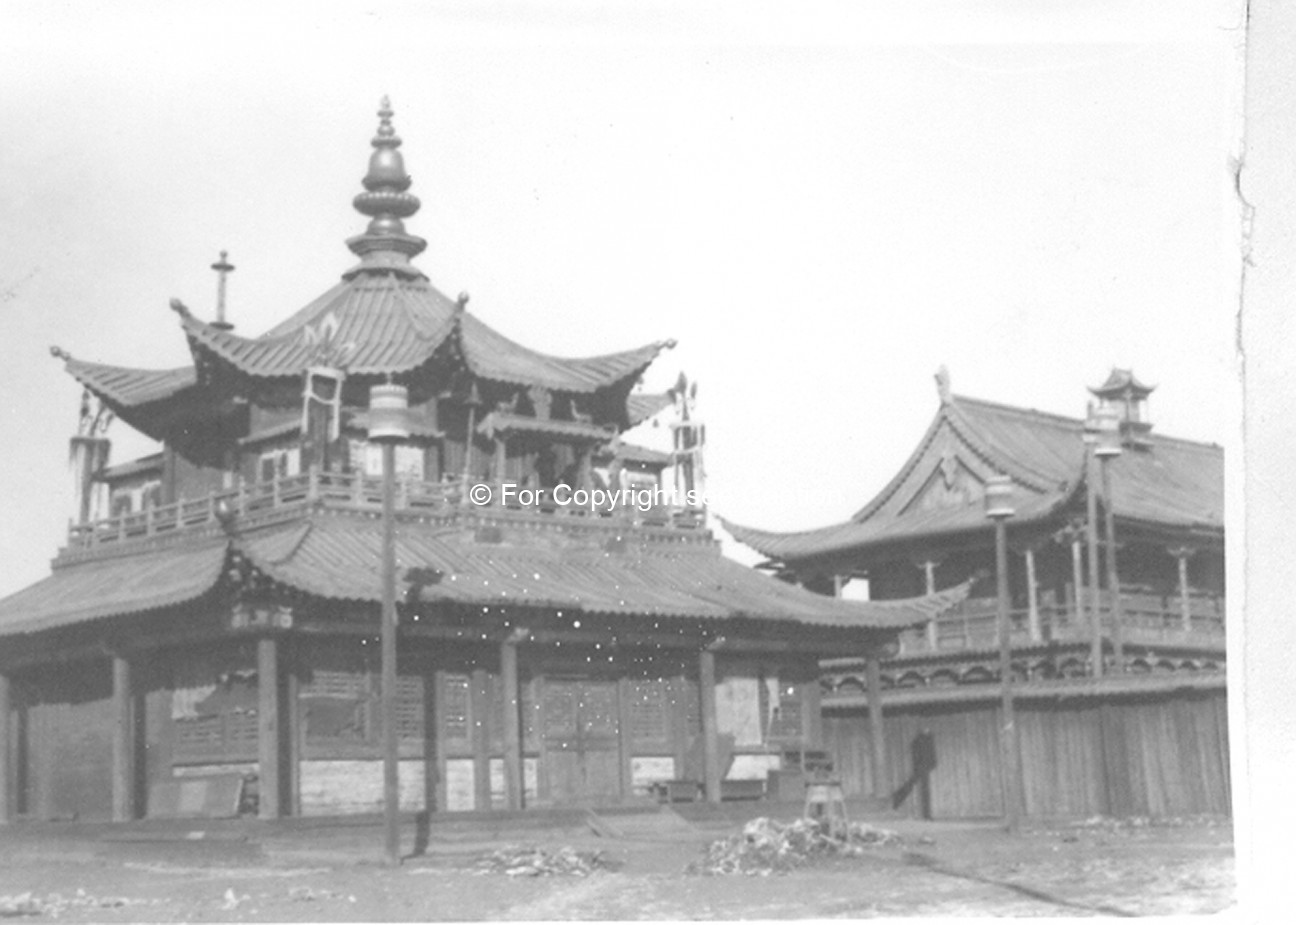 Dorj povran and Ochirdar temple within the Yellow Palace. Film Archives K-24030